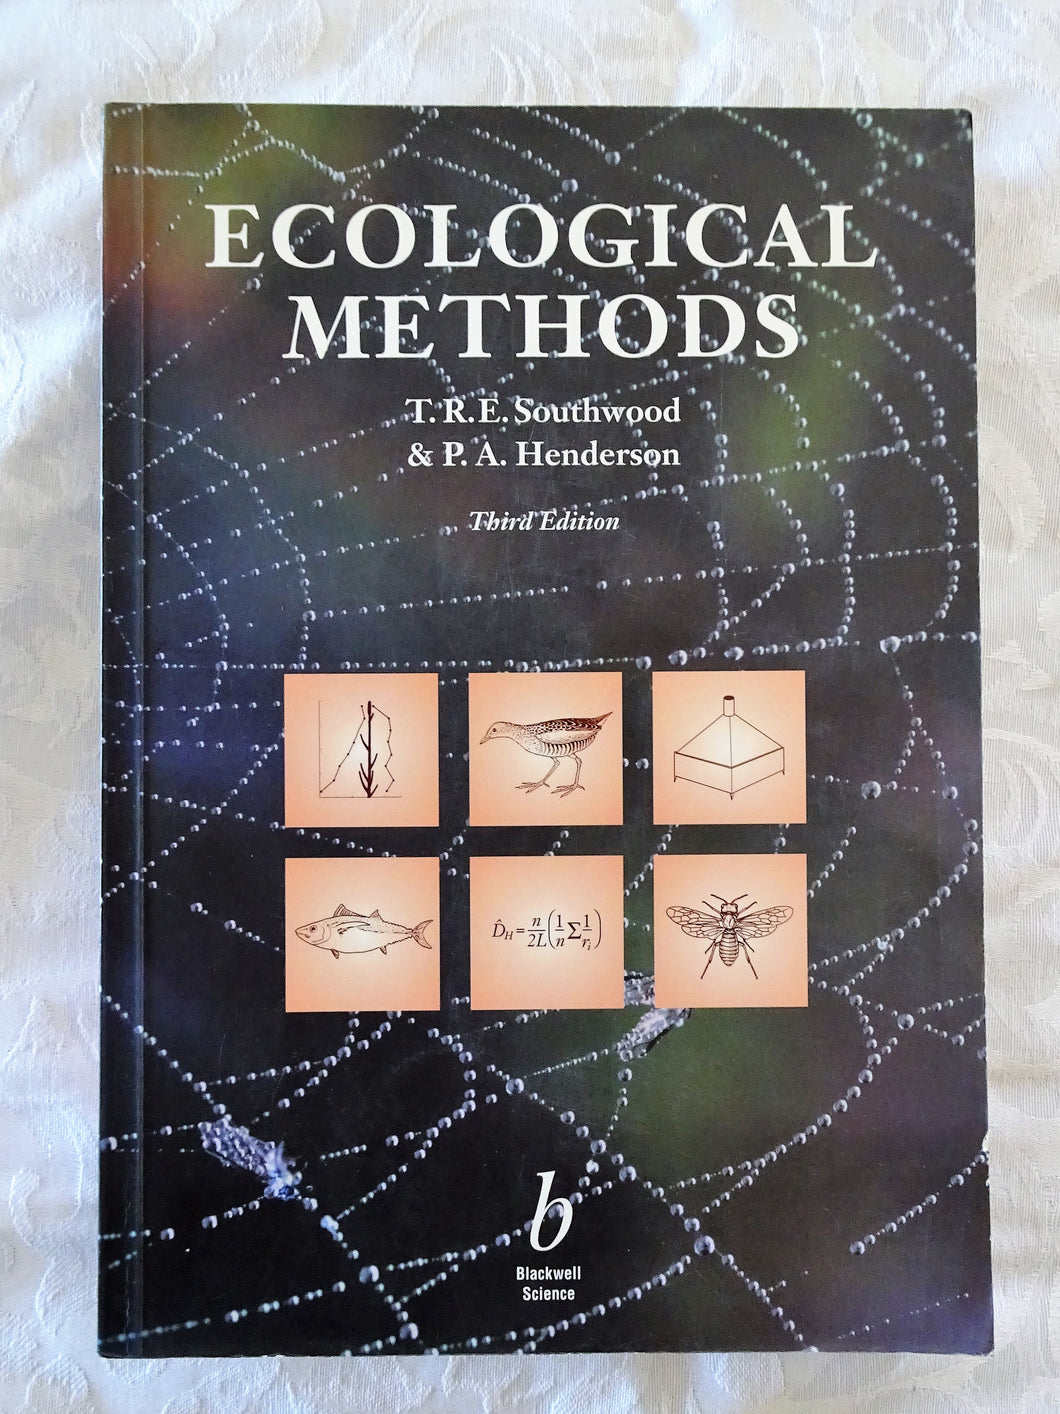 Ecological Methods by T.R.E. Southwood & P.A. Henderson